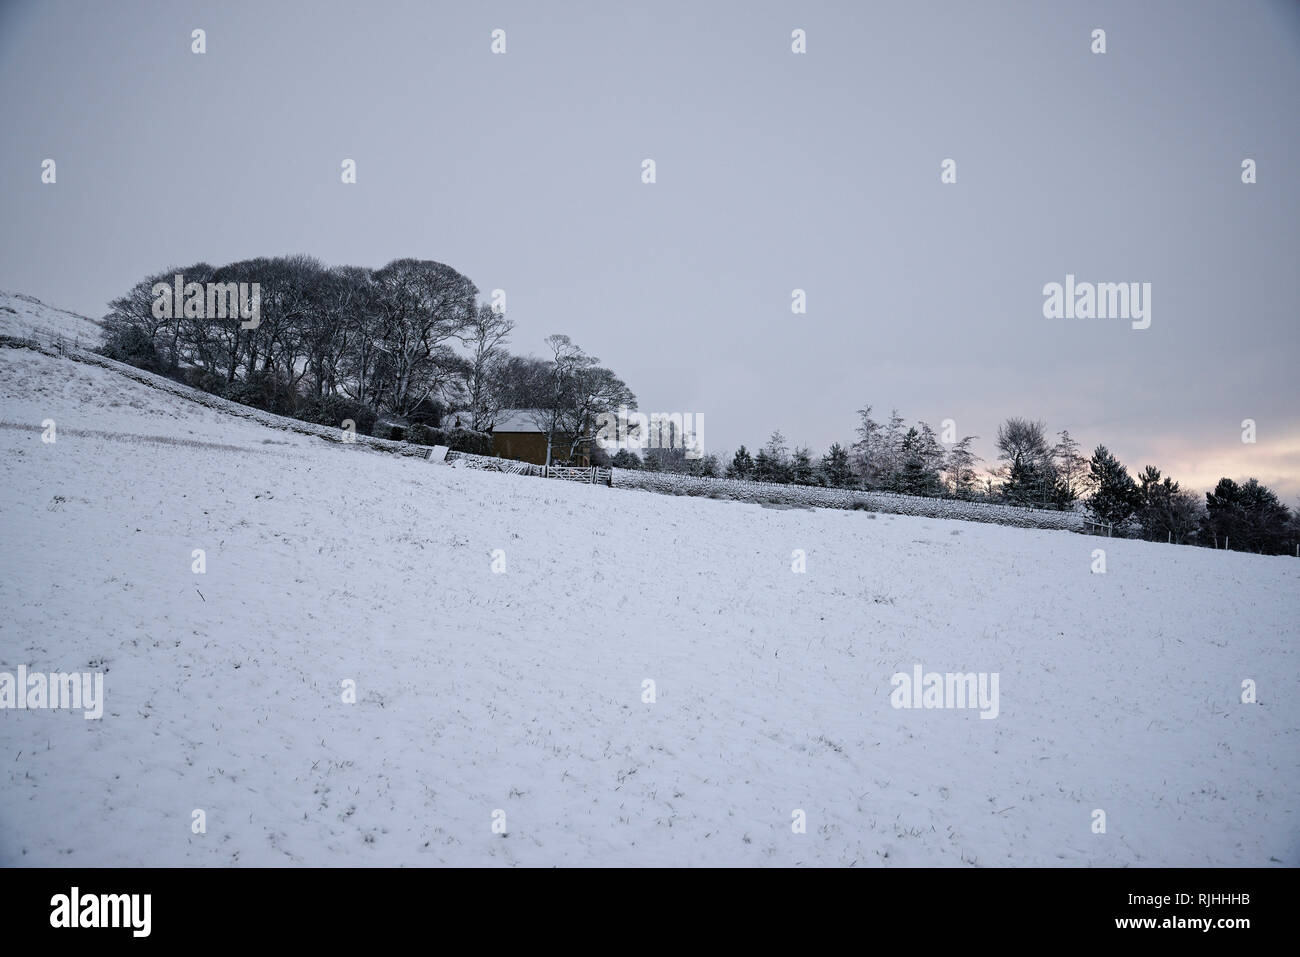 Snowy dawn in the Peak District National Park, England. Twilight light. - Stock Image